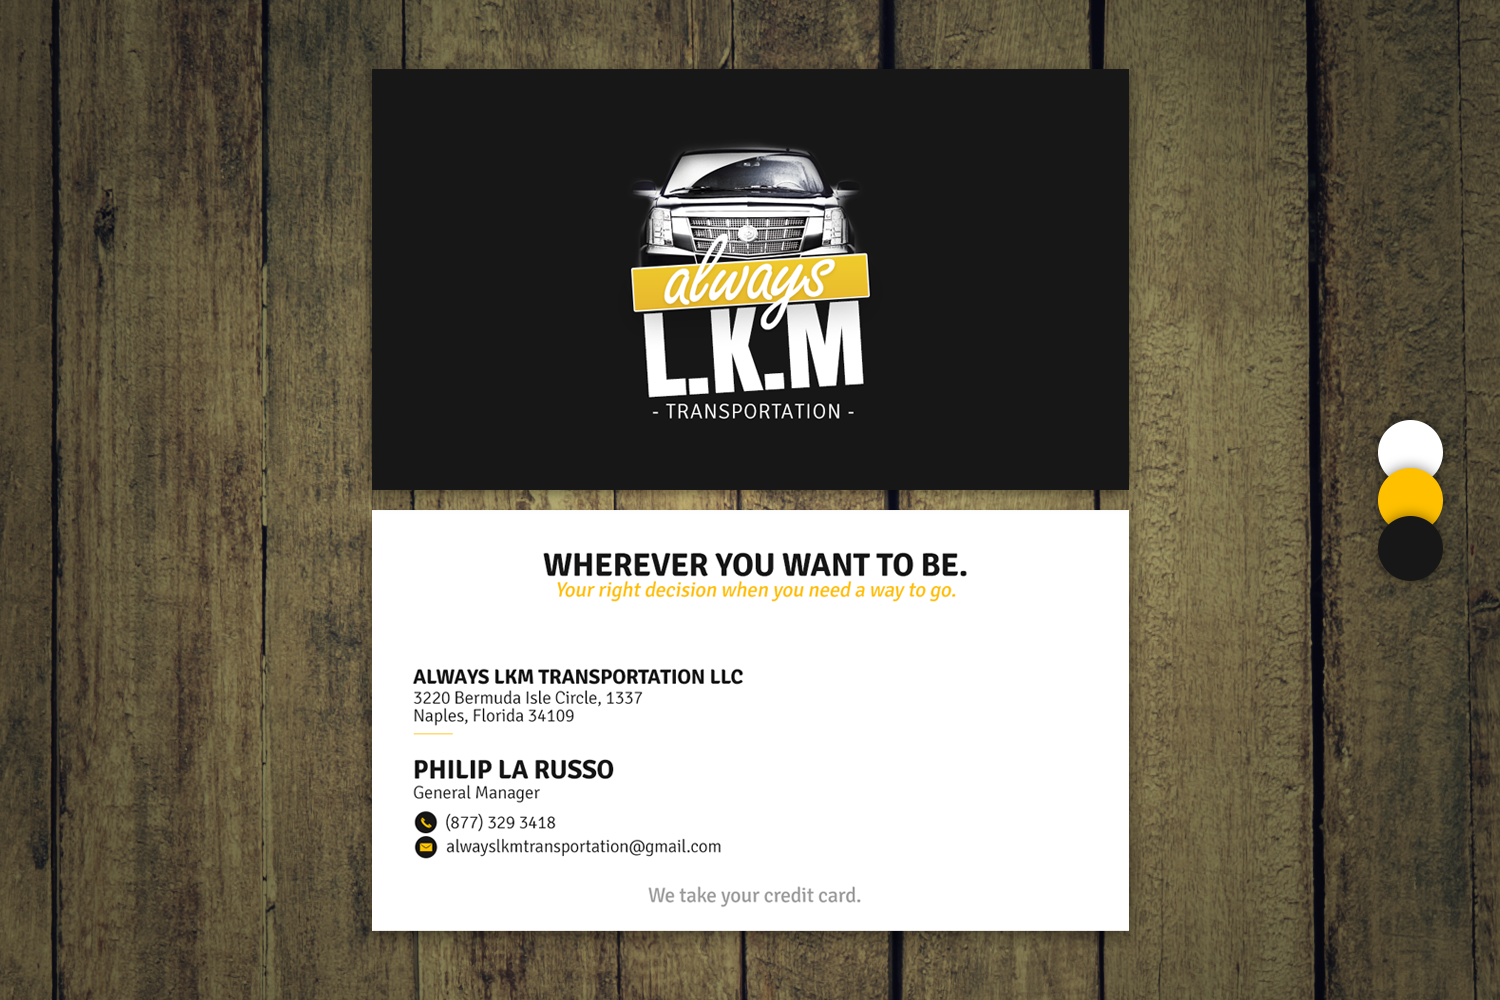 Masculine, Serious, Business Business Card Design for ALWAYS